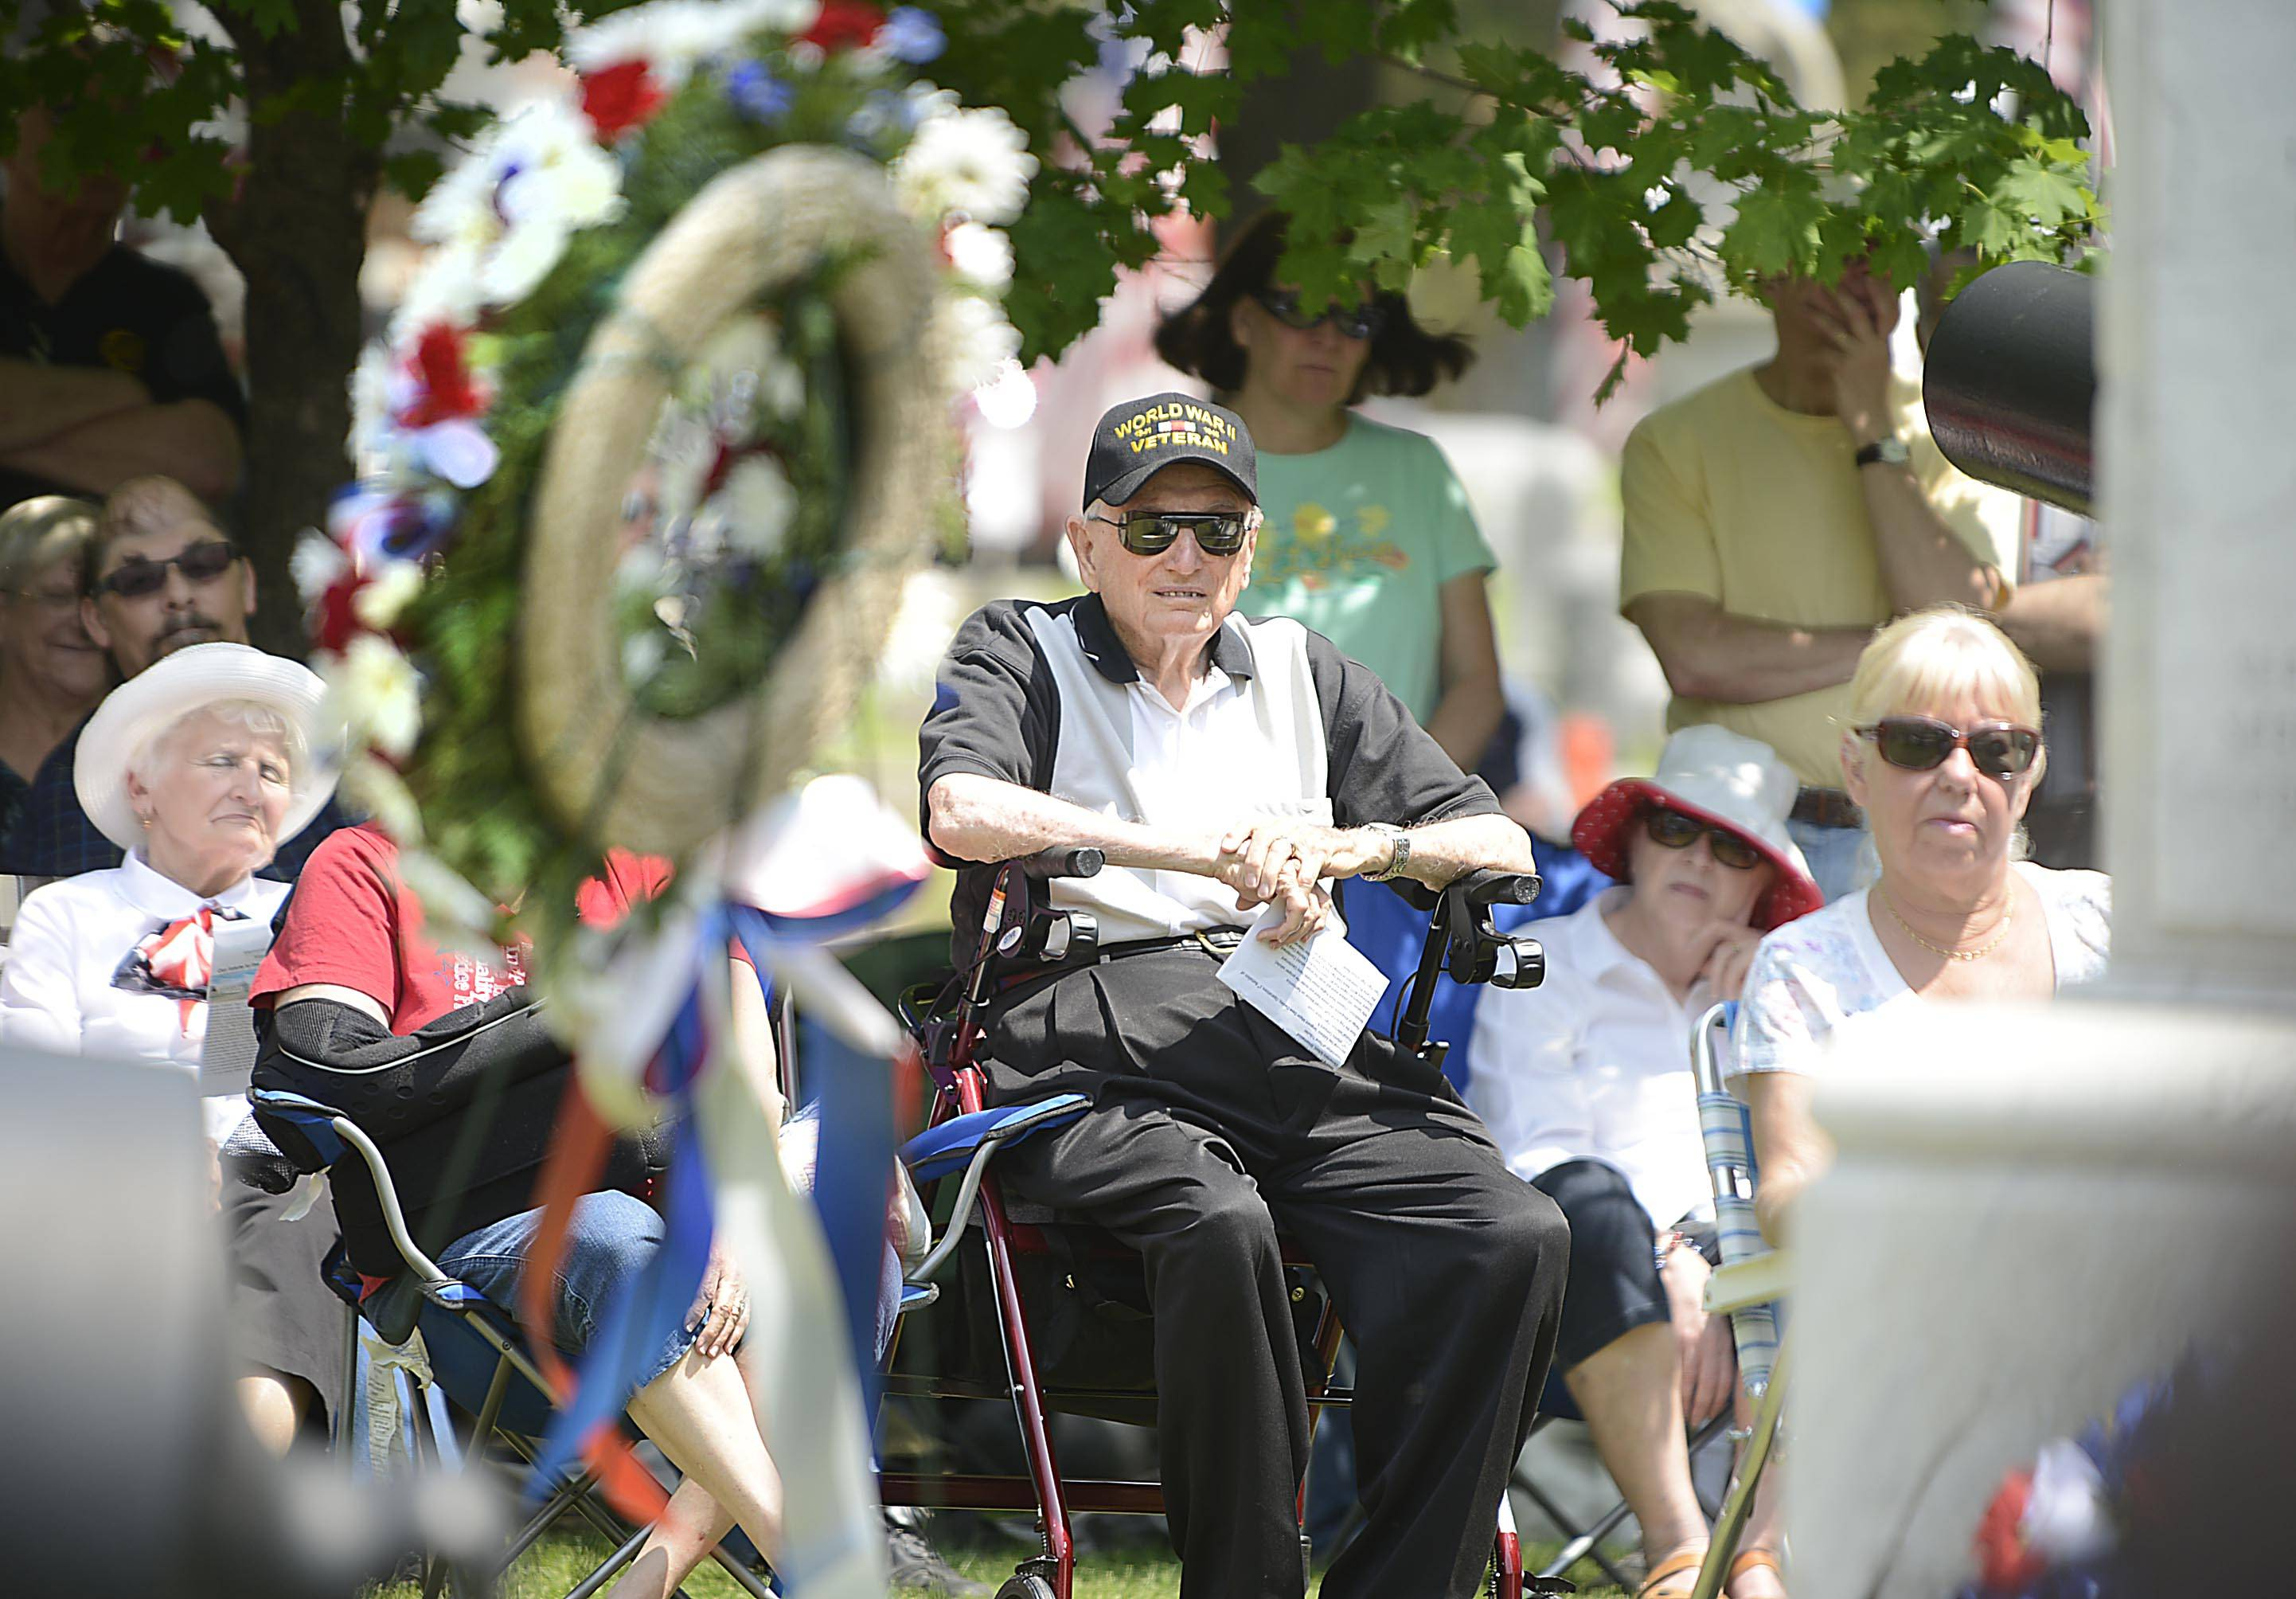 Howard Bedell, 94, watches the Elgin Memorial Day event at Bluff City Cemetery. The Elgin man served three years in the Pacific during World War II.